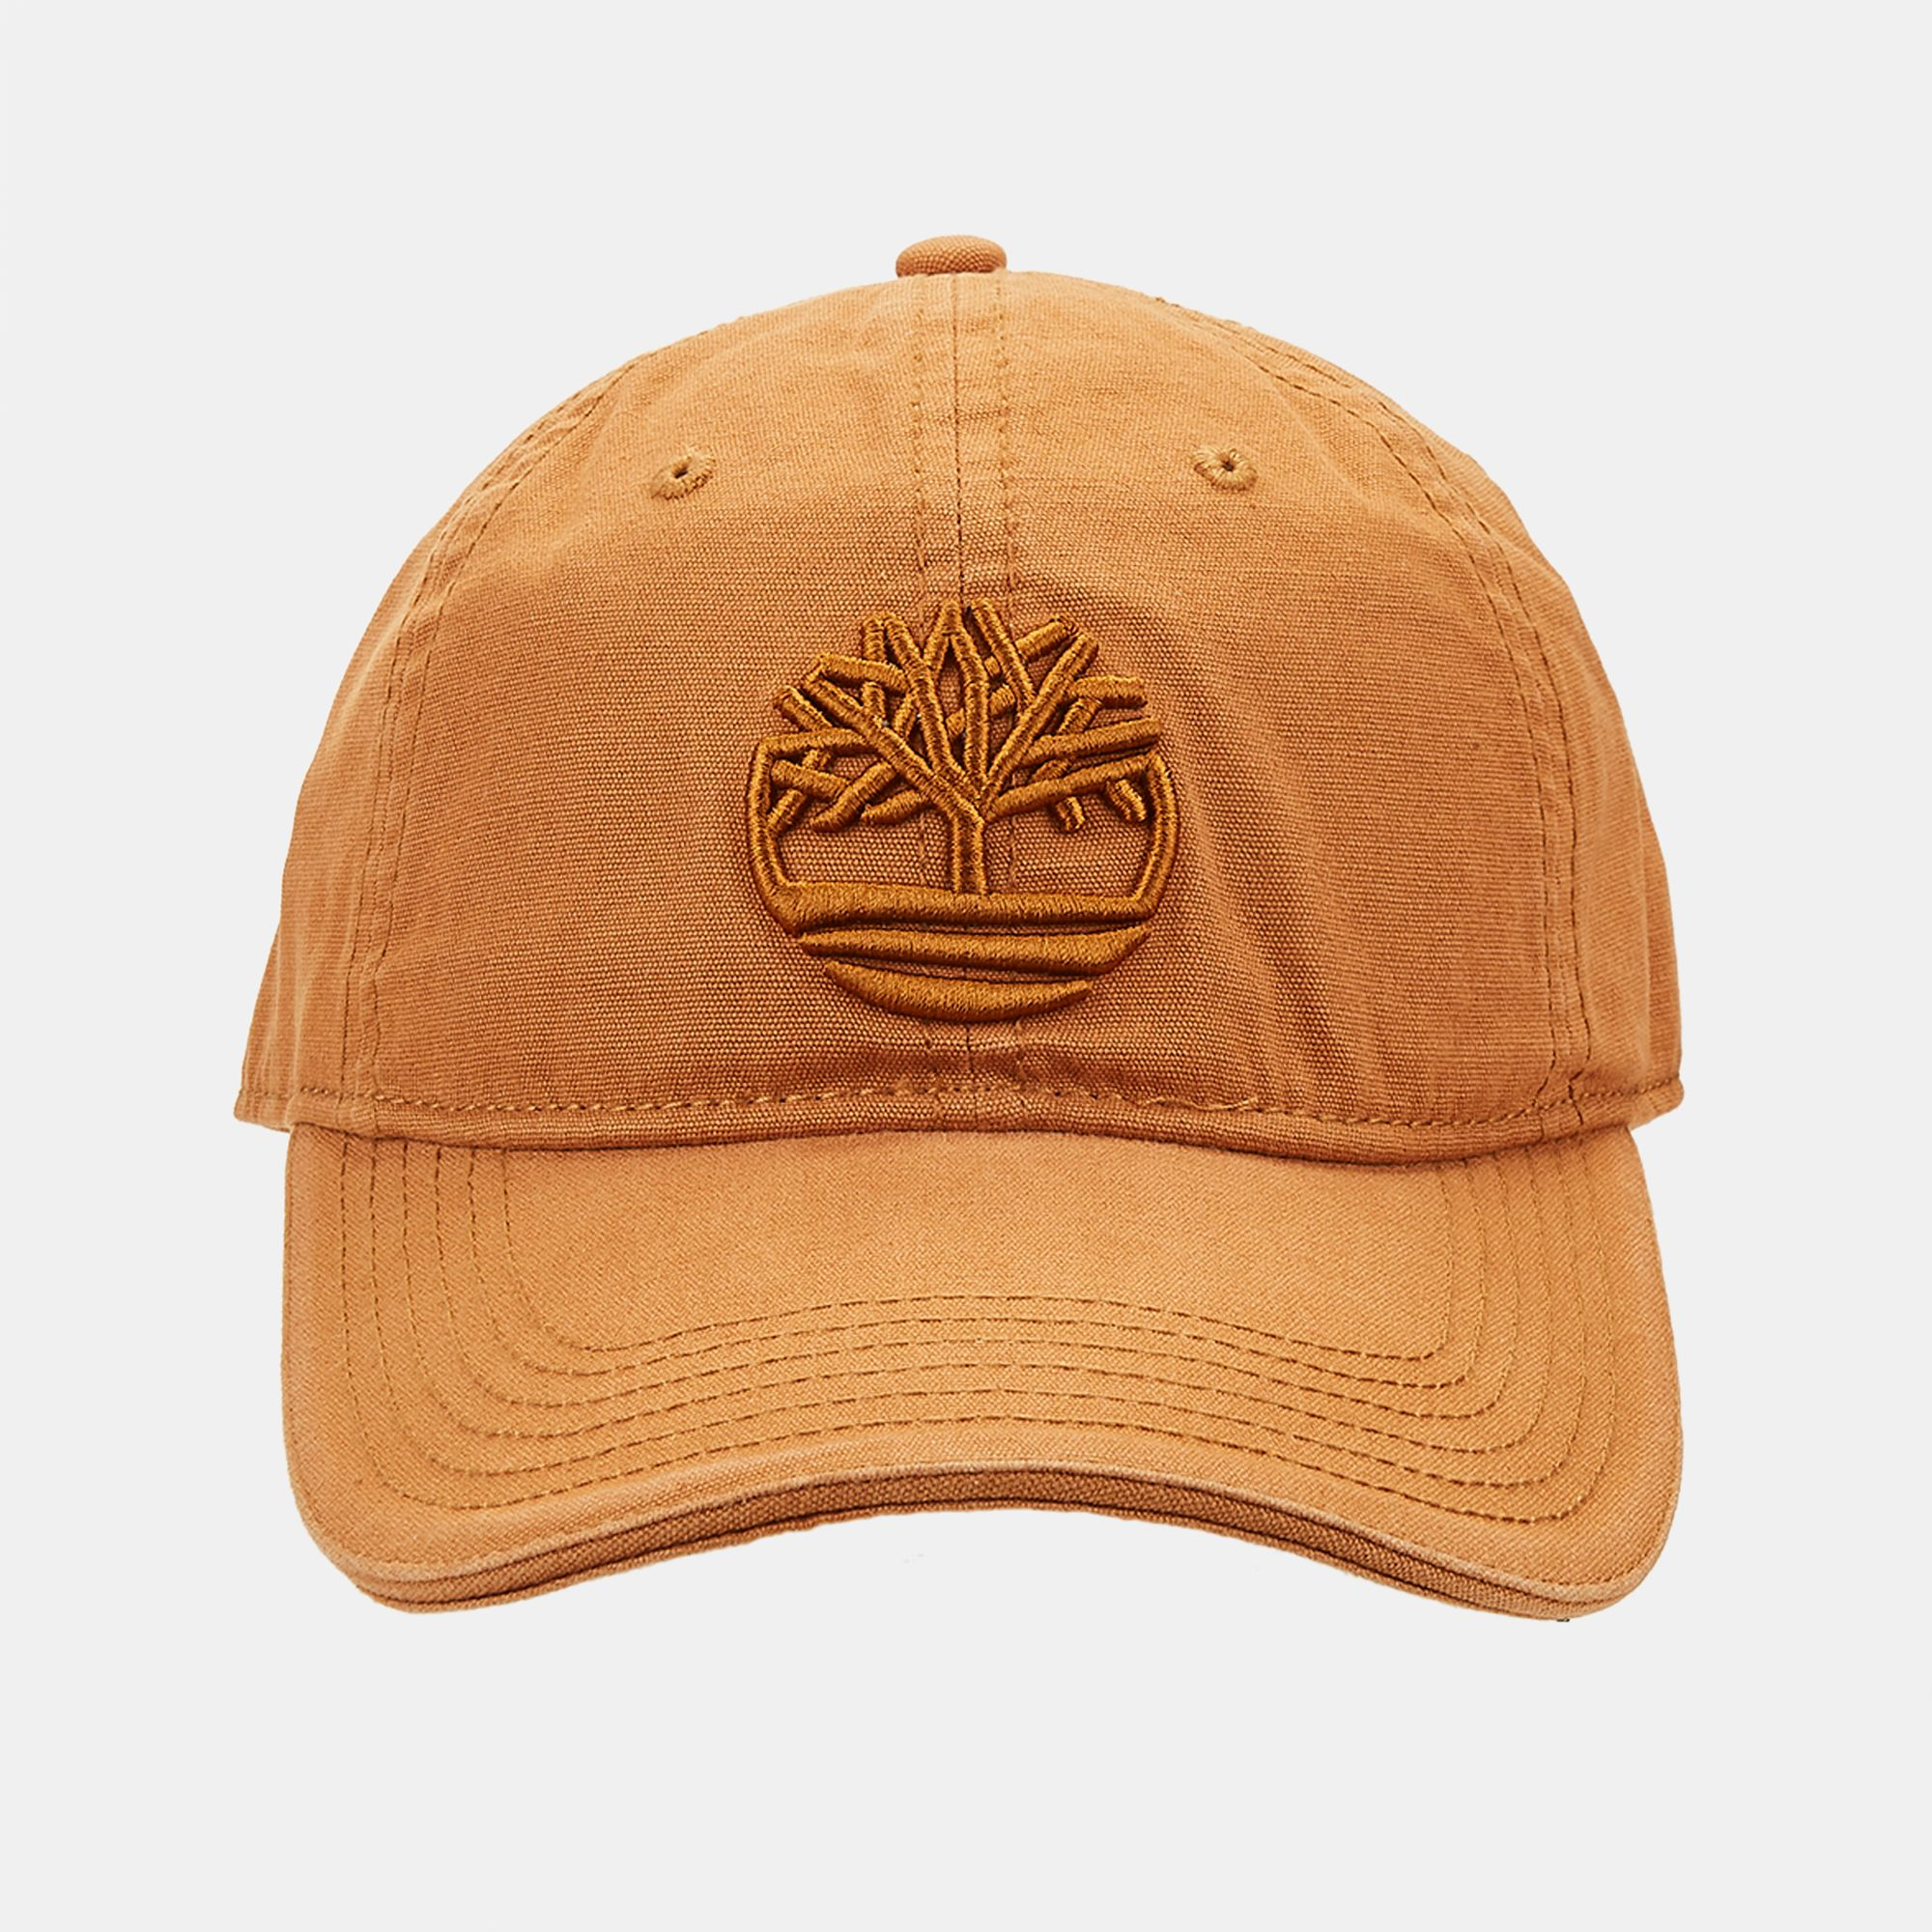 36b3ffdee70 Shop Yellow Timberland® Cotton Canvas Embroidered Baseball Cap for ...